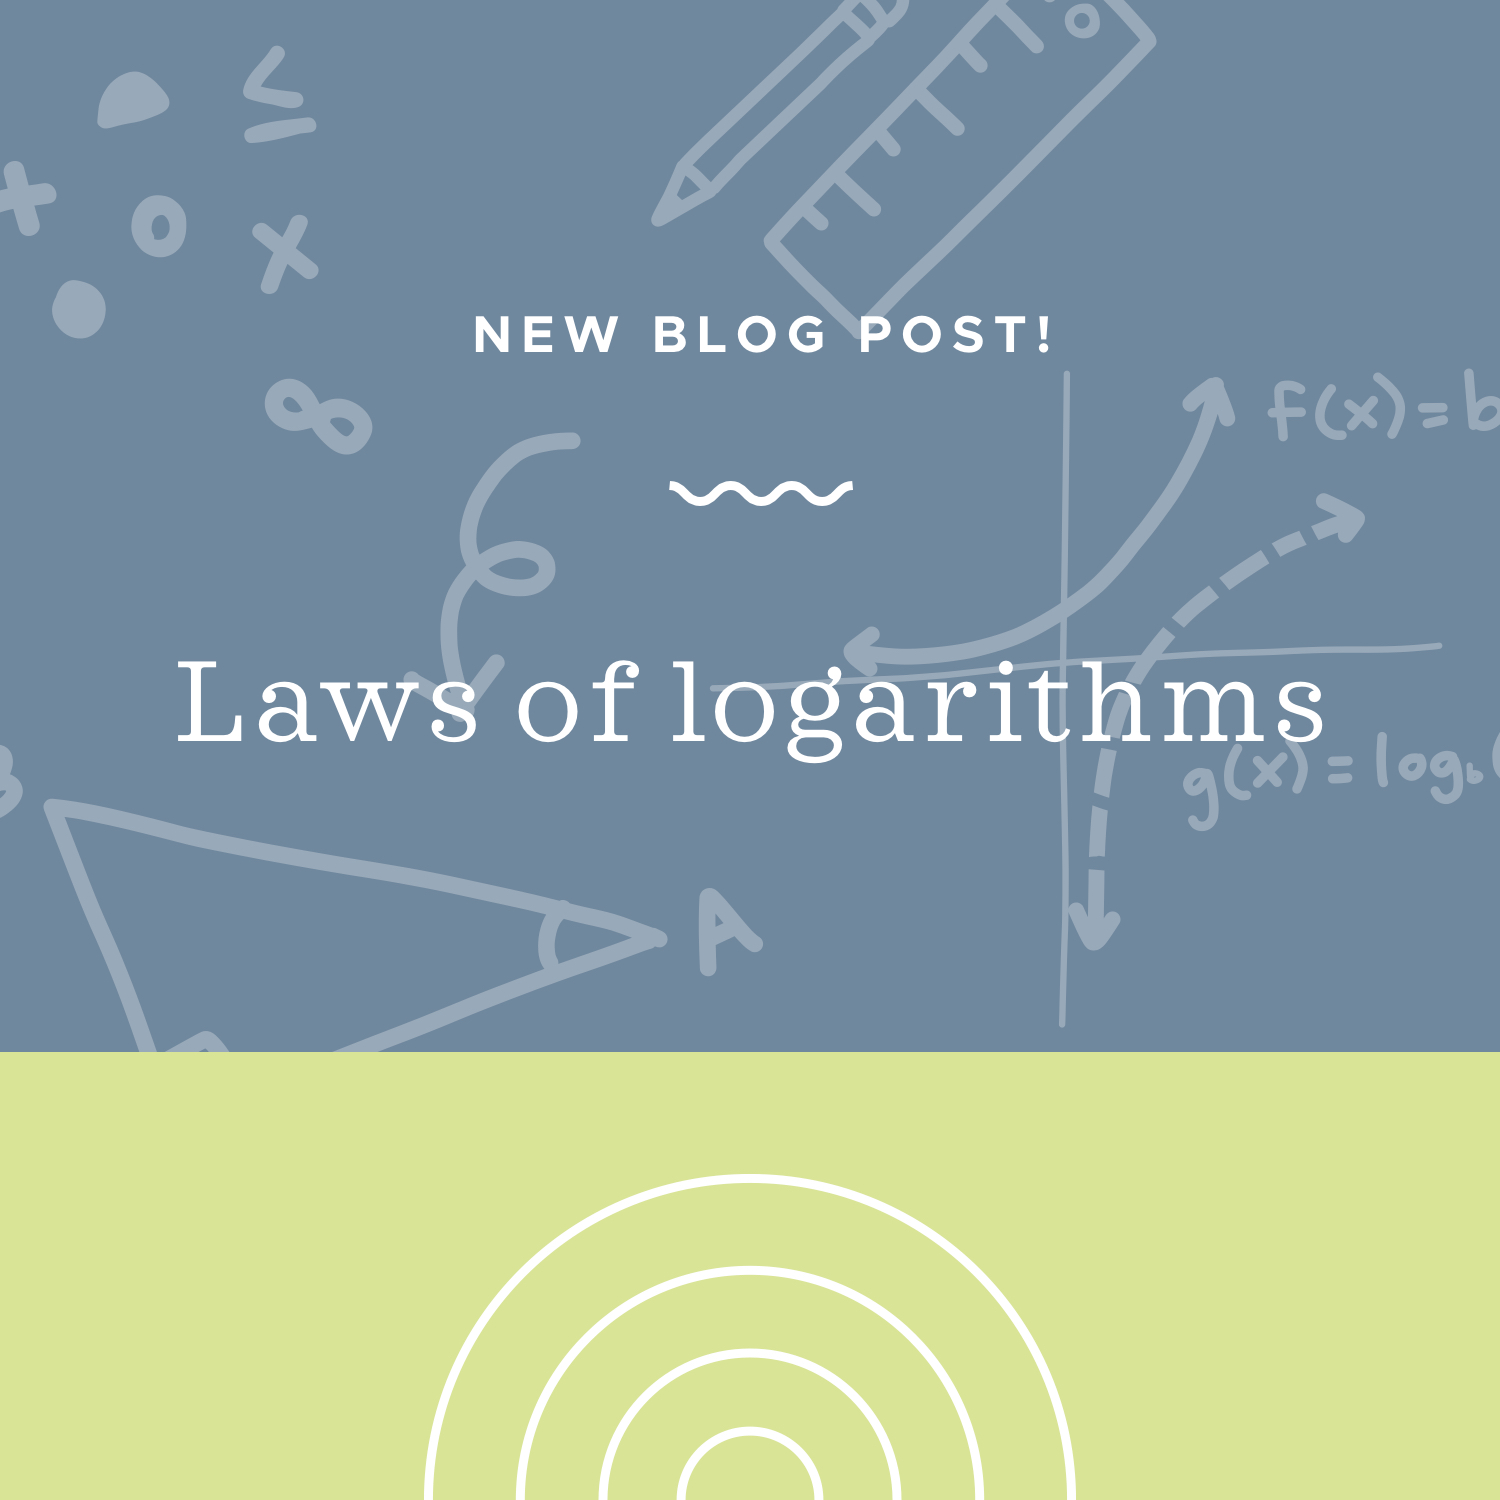 Laws of logarithms blog post.jpeg